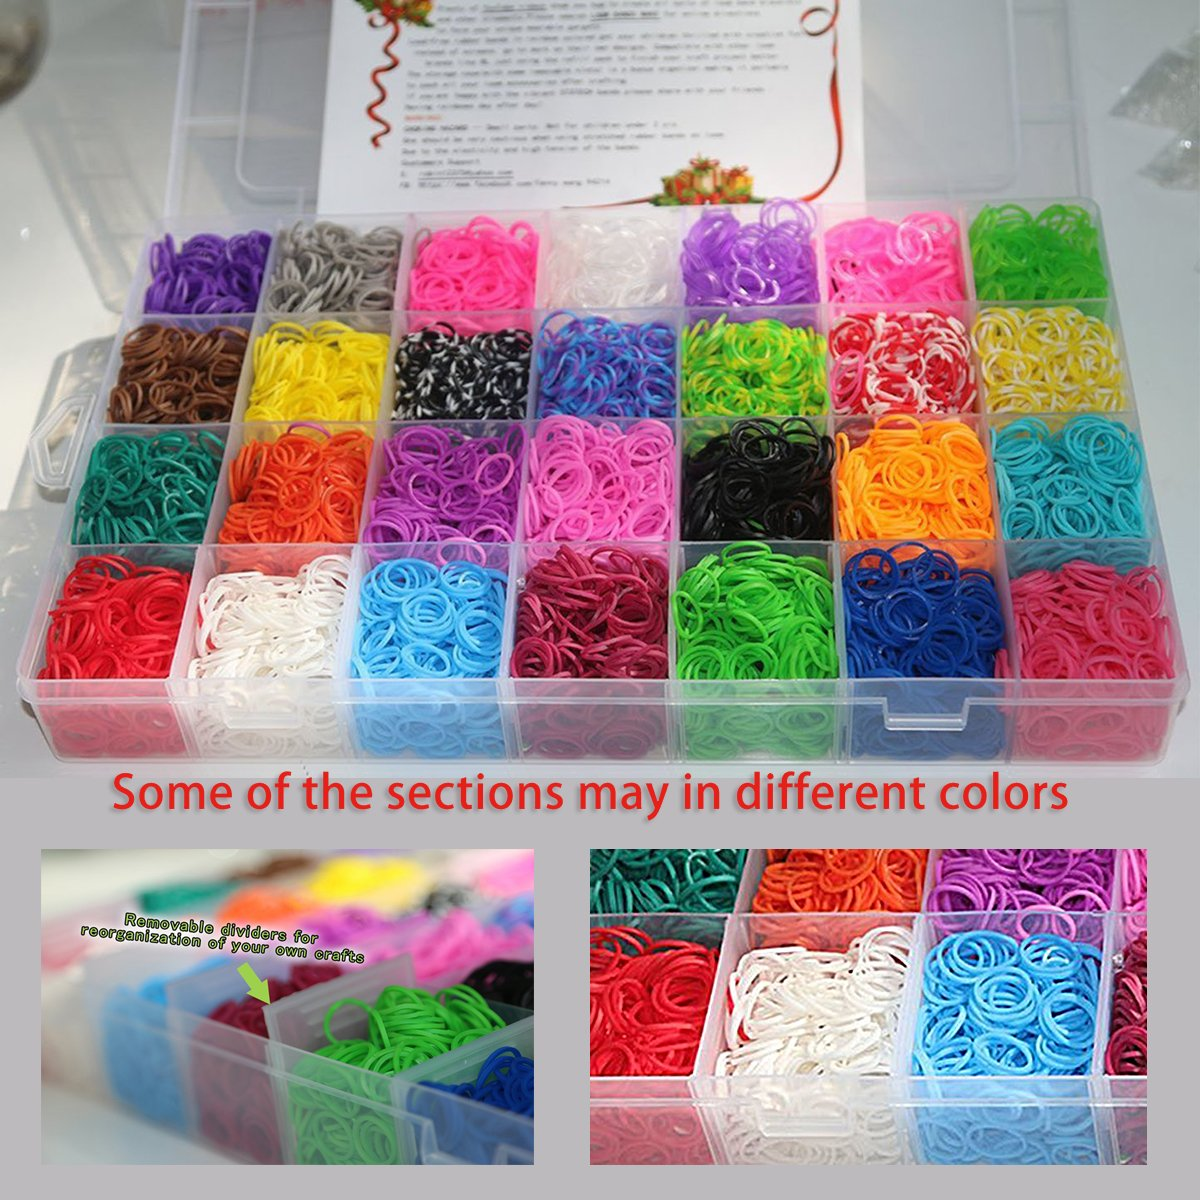 XMAS Present Set in Rainbow Color 10,000 Rubber Bands Refill Pack Colorful Loom Kit Organizer for Kids Bracelet Weaving DIY Crafting with Crystal-like Charms,500 S-Clips,Mini Hook and 175 Beads